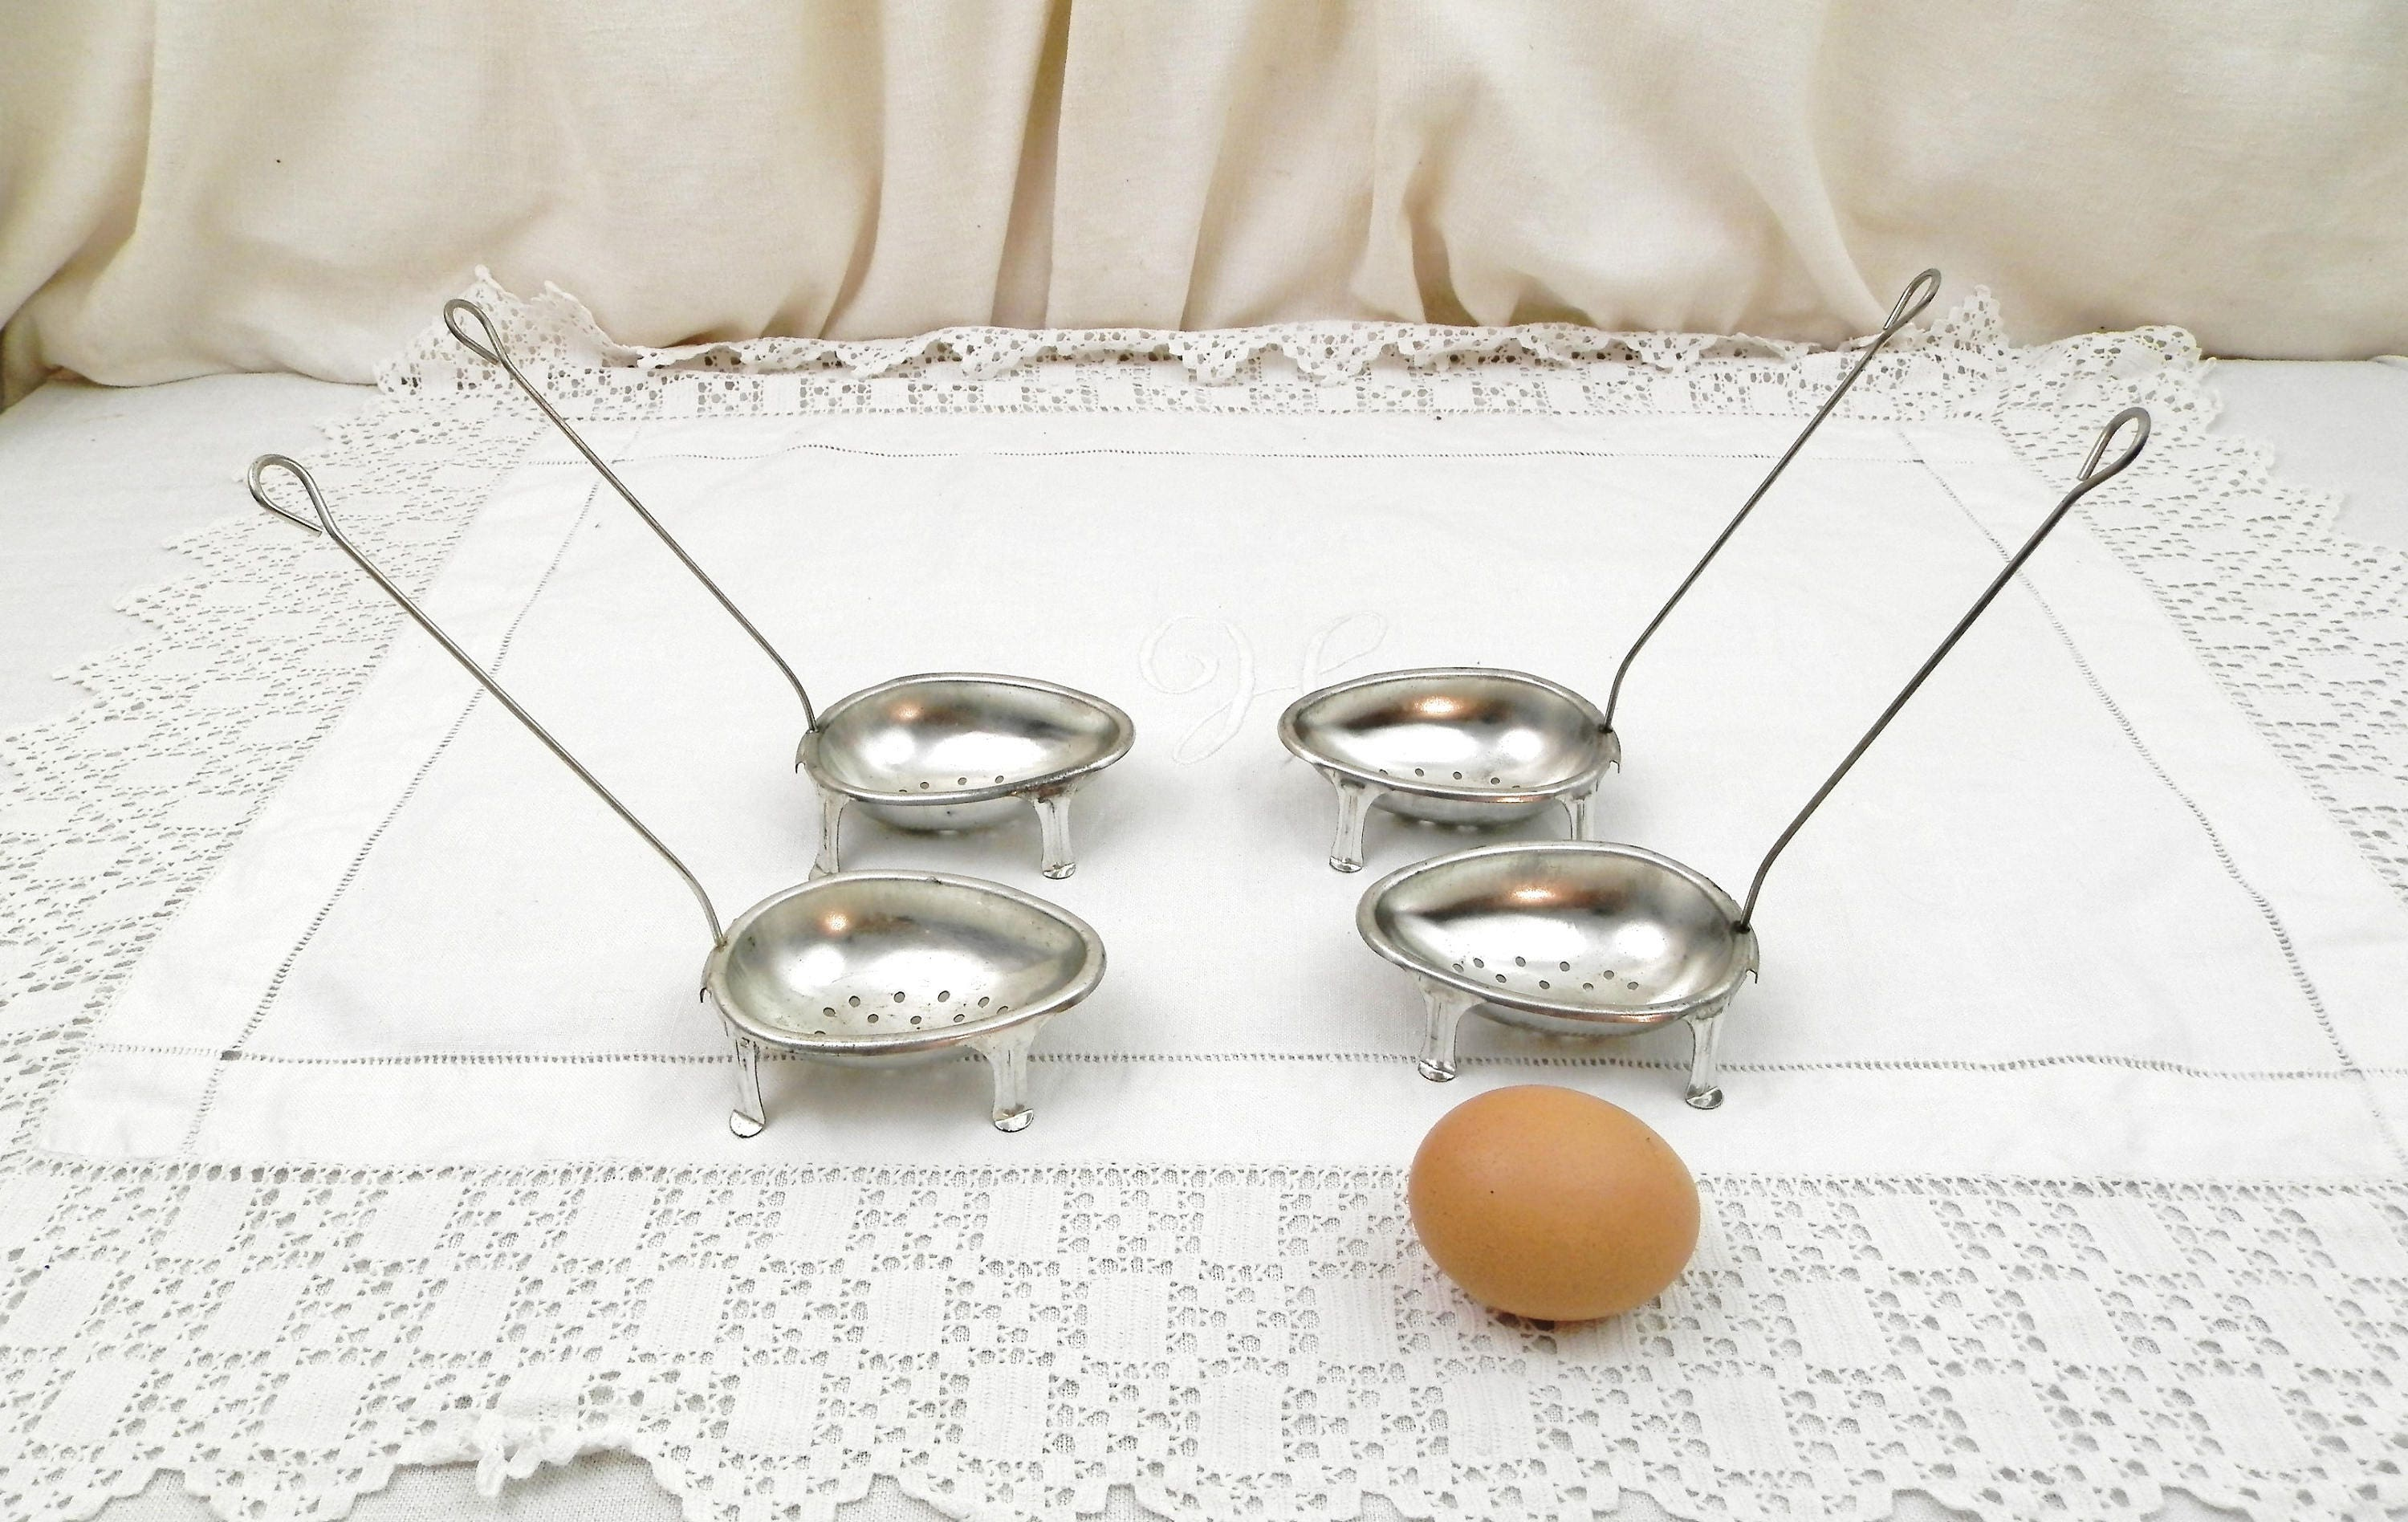 attractive Vintage Egg Poachers Part - 10: Set of 4 Vintage Unused French Footed Metal Egg Poachers for Saucepan with  Instructions Made by Combrichon in France, Poached Eggs Cooking